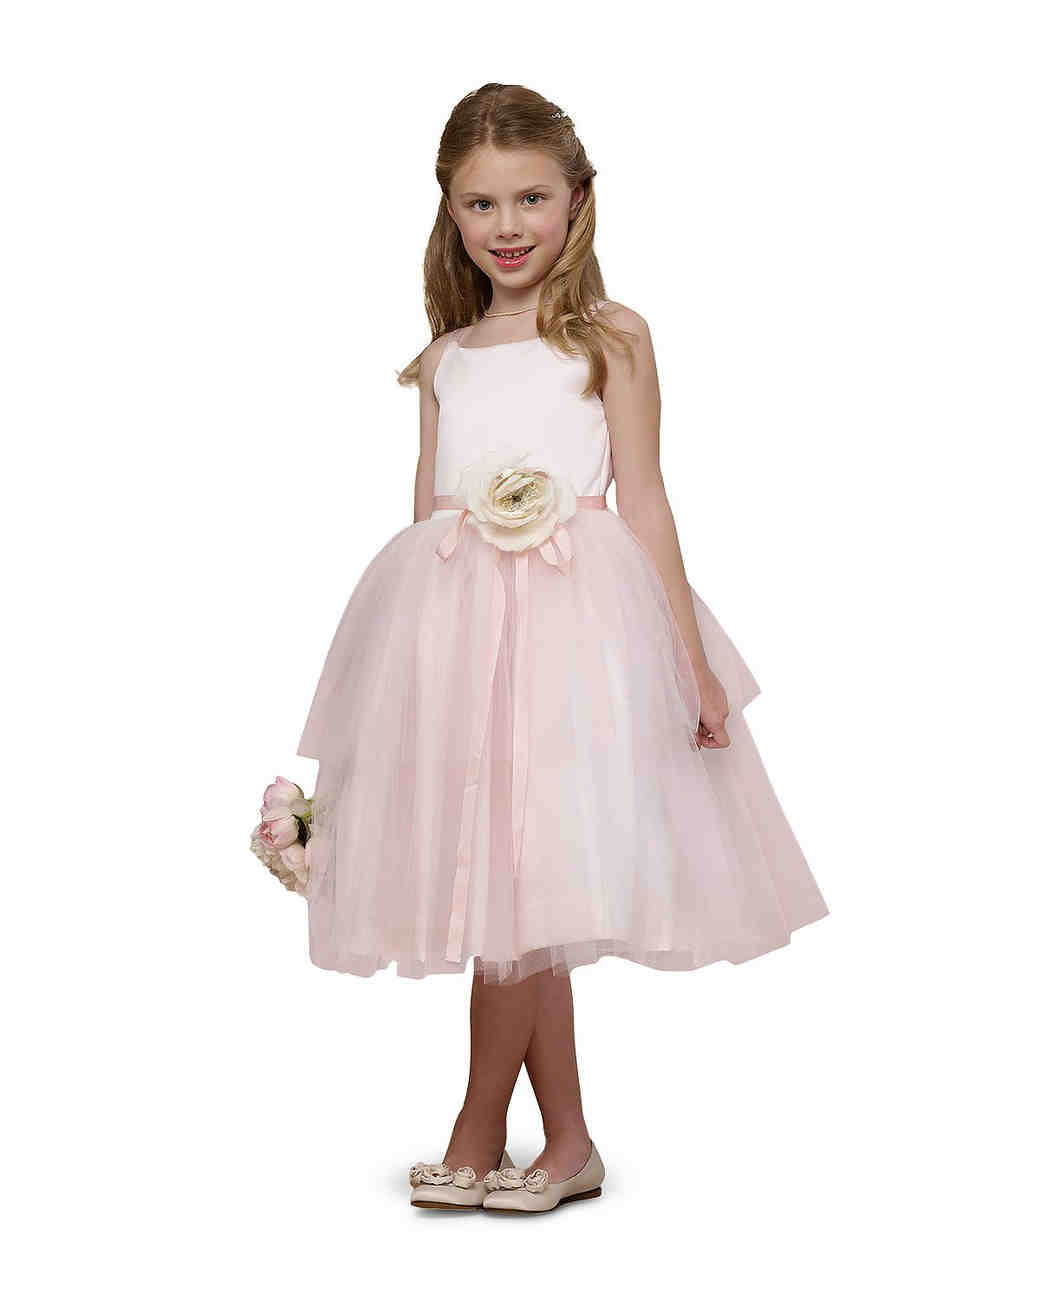 summer flower girl outfit pink ballerina dress with flower